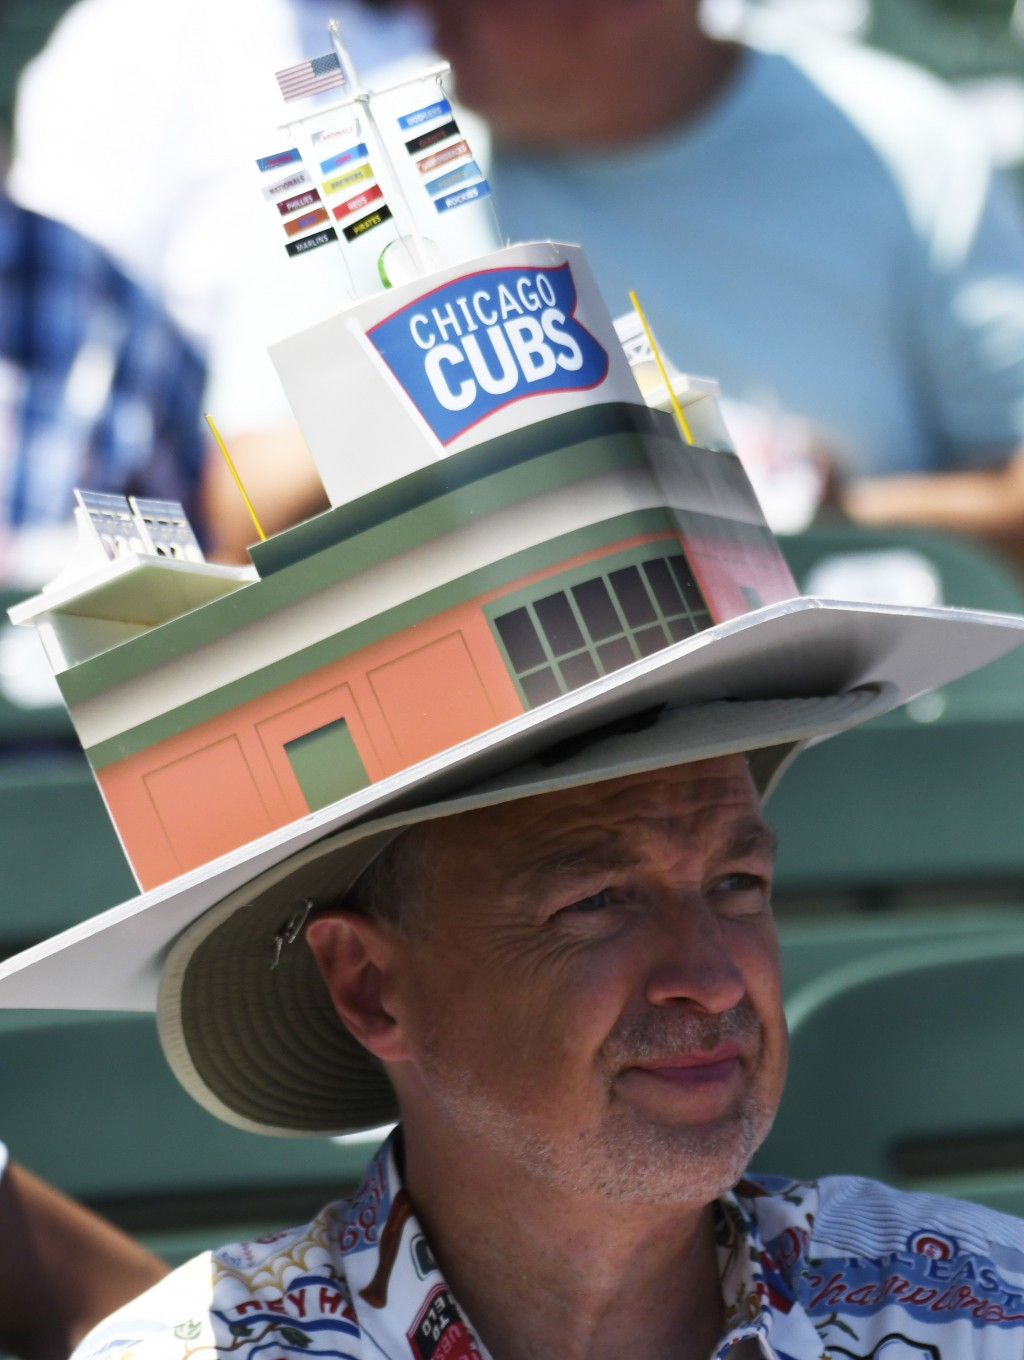 Kent Weakly sits in the stands before a baseball game between the Chicago Cubs and the Milwaukee Brewers, Saturday, Aug. 3, 2019, in Chicago. (AP Phot...